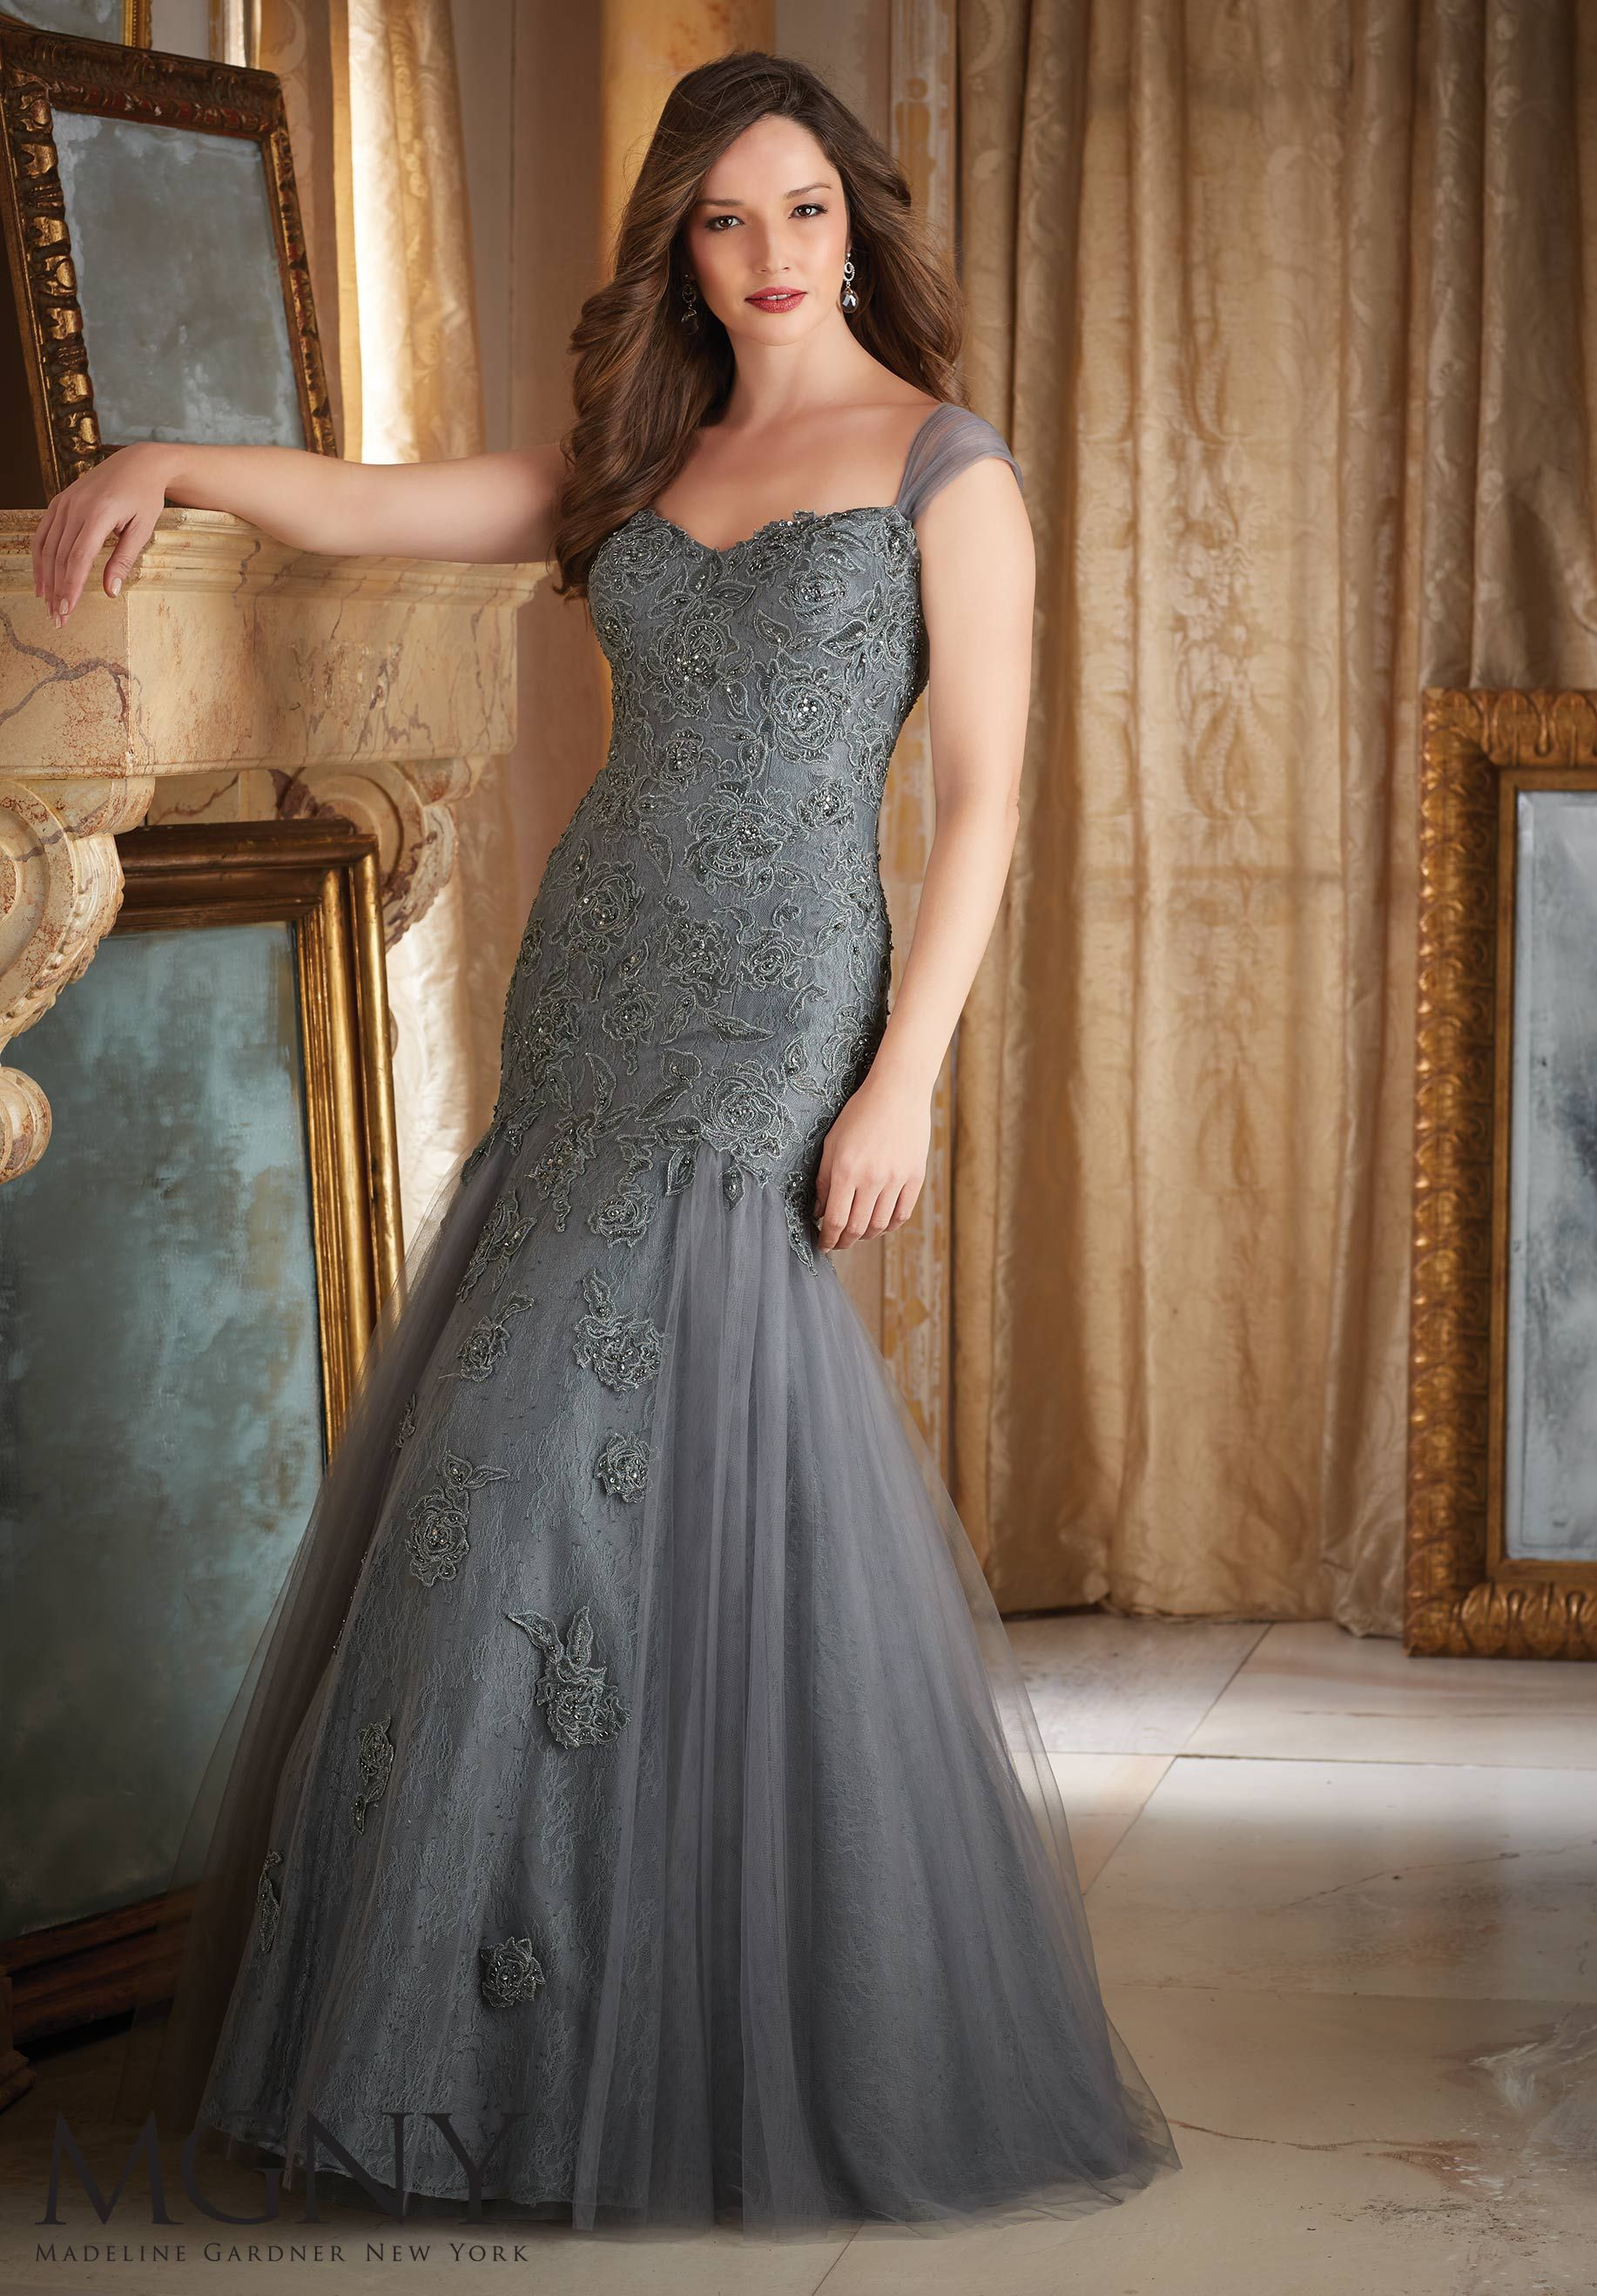 Beaded Embroidery on Tulle Mother of the Bride Dress Designed by Madeline Gardner. Colors available: Charcoal, Aubergine